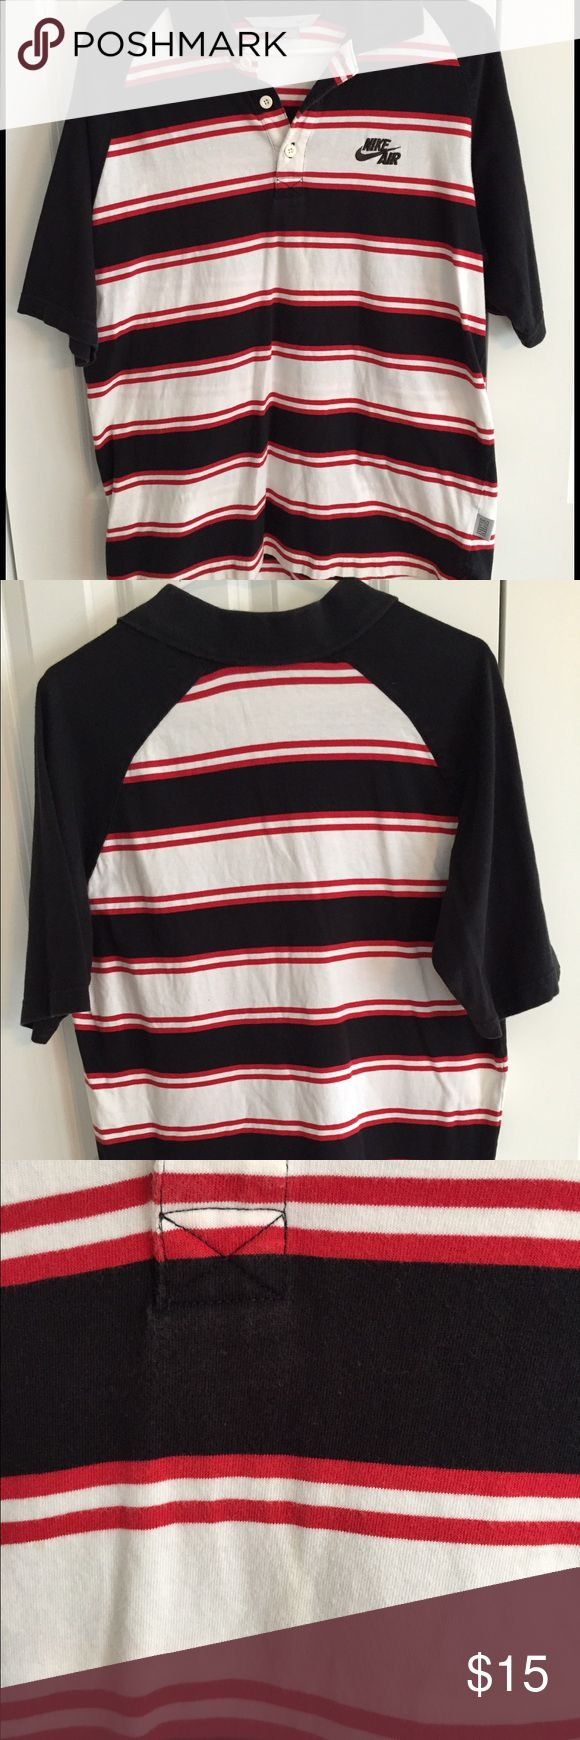 Men's Nike Polo Shirt Black, red and white striped Nike Air polo shirt. Very faint yellowish stain on front in the center - at bottom stripe in photo #3. Some normal wash wear/slight graying of collar as seen in photo #4. 100% Cotton. Smoke free/pet free home Nike Shirts Polos